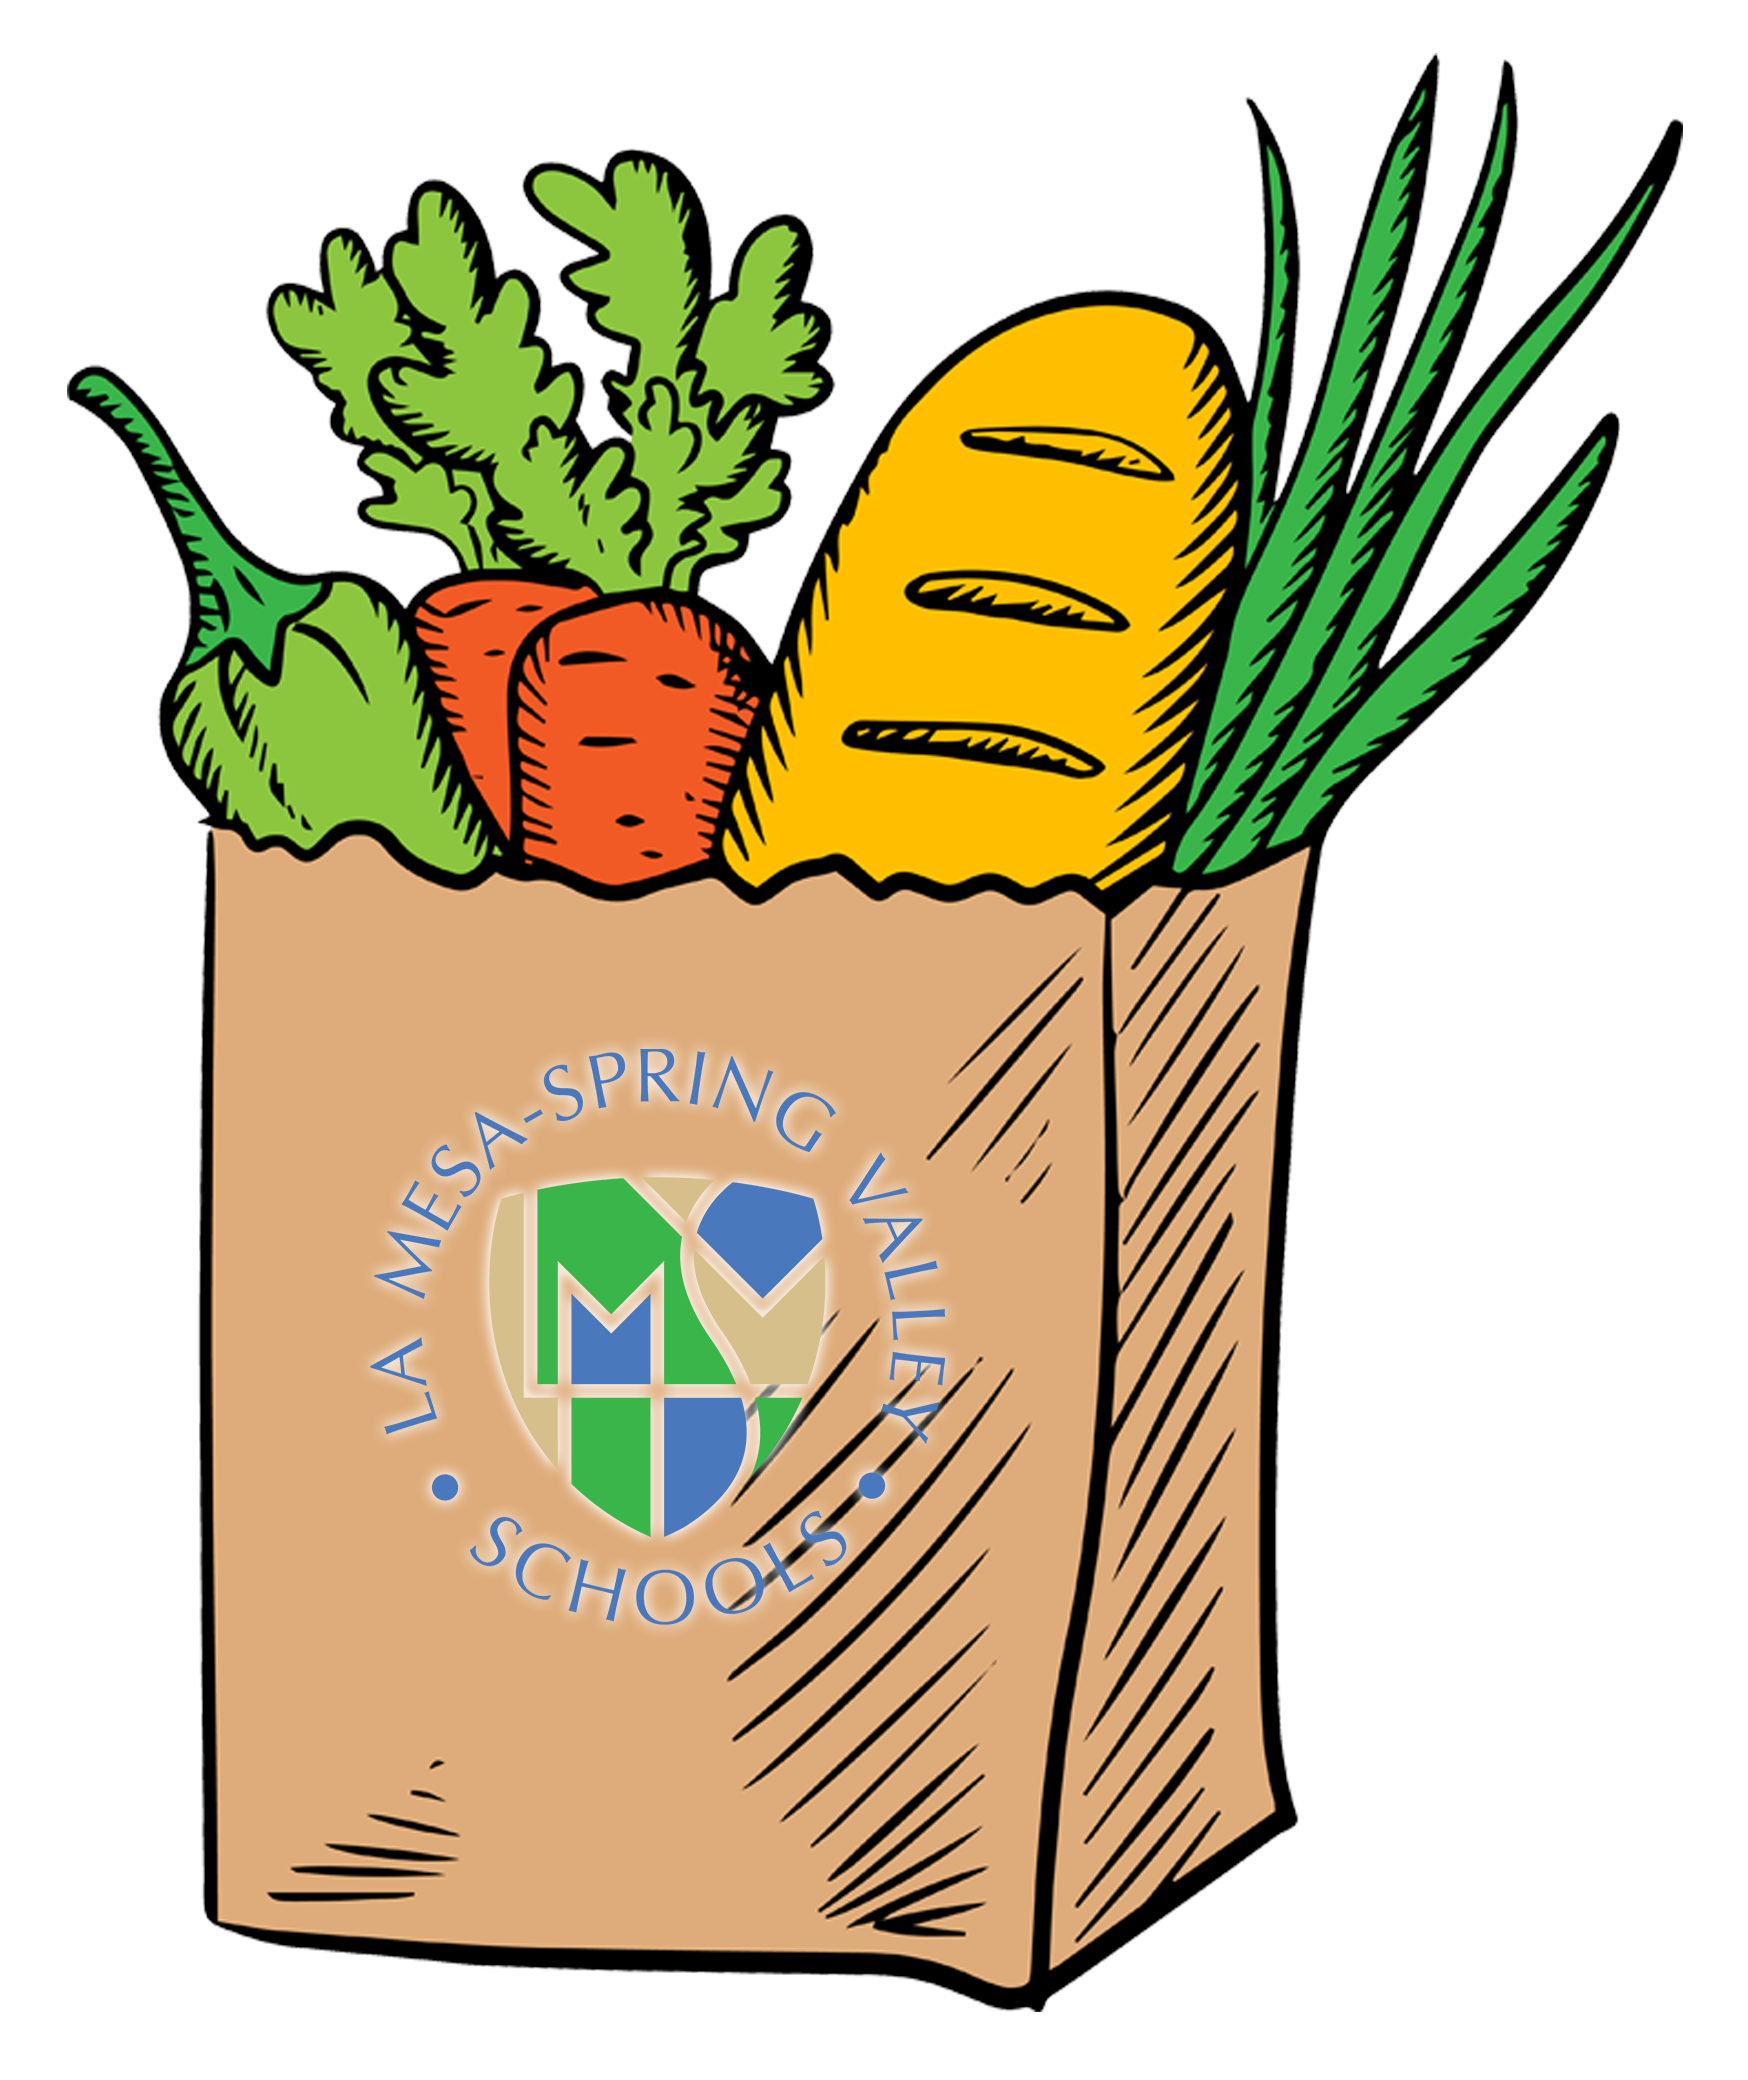 Grocery Bag with Vegetables and Bread loaf